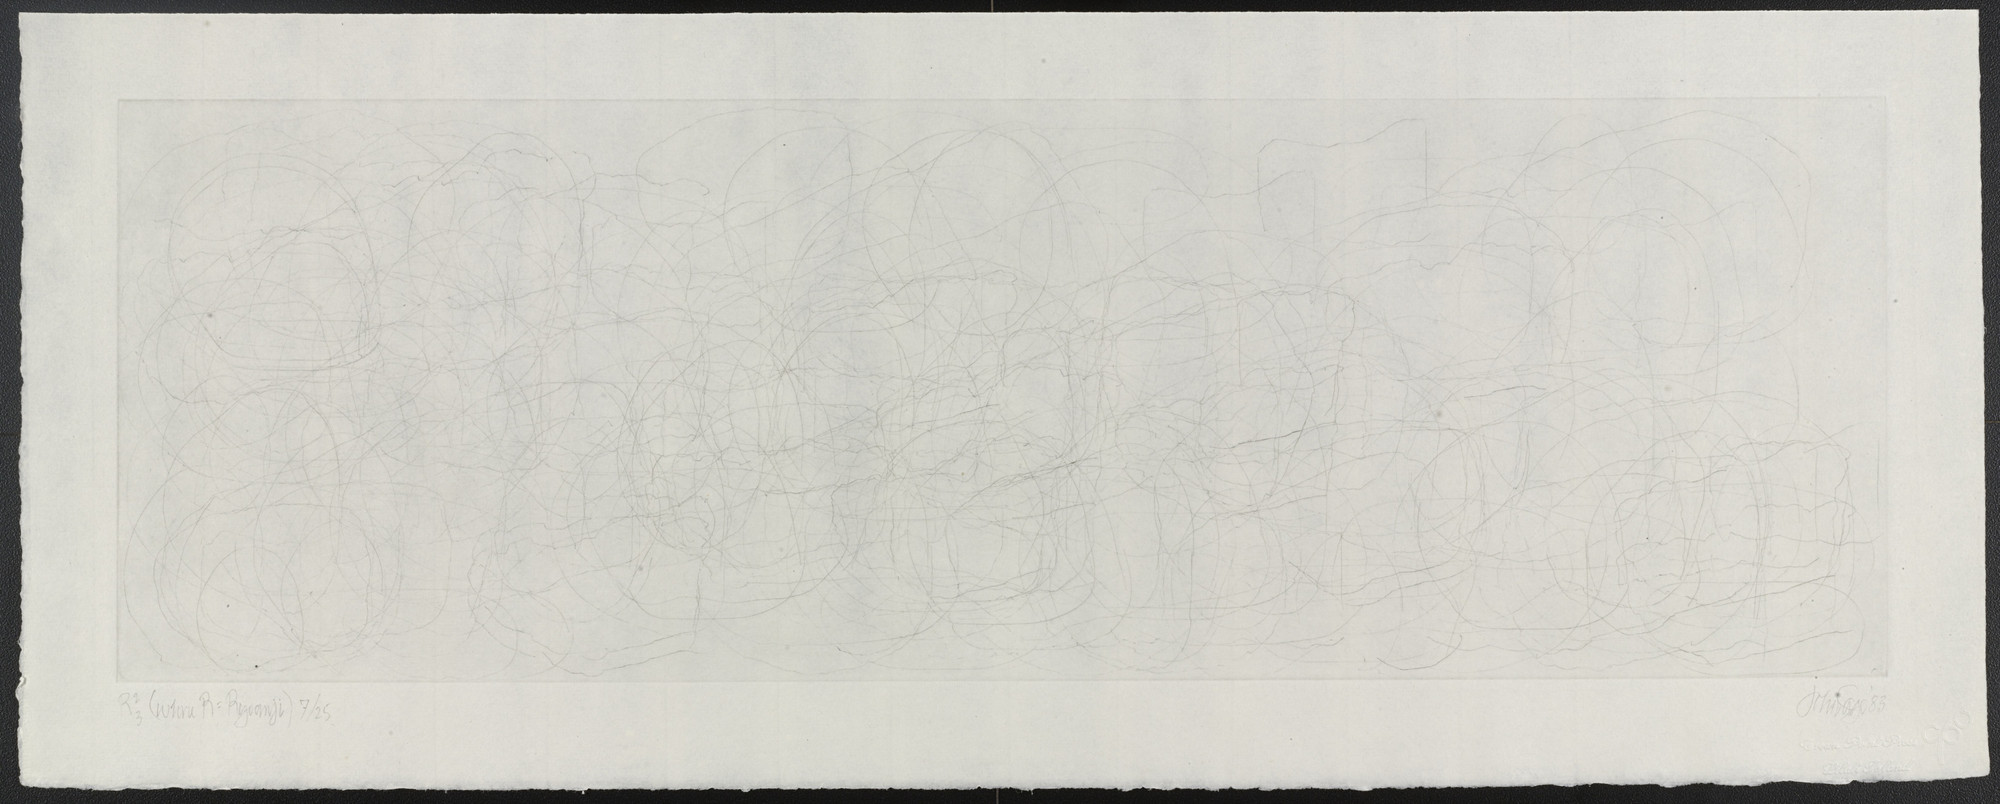 John Cage. R(superscript 2, subscript 3) from the series Where R=Ryoanji. 1983